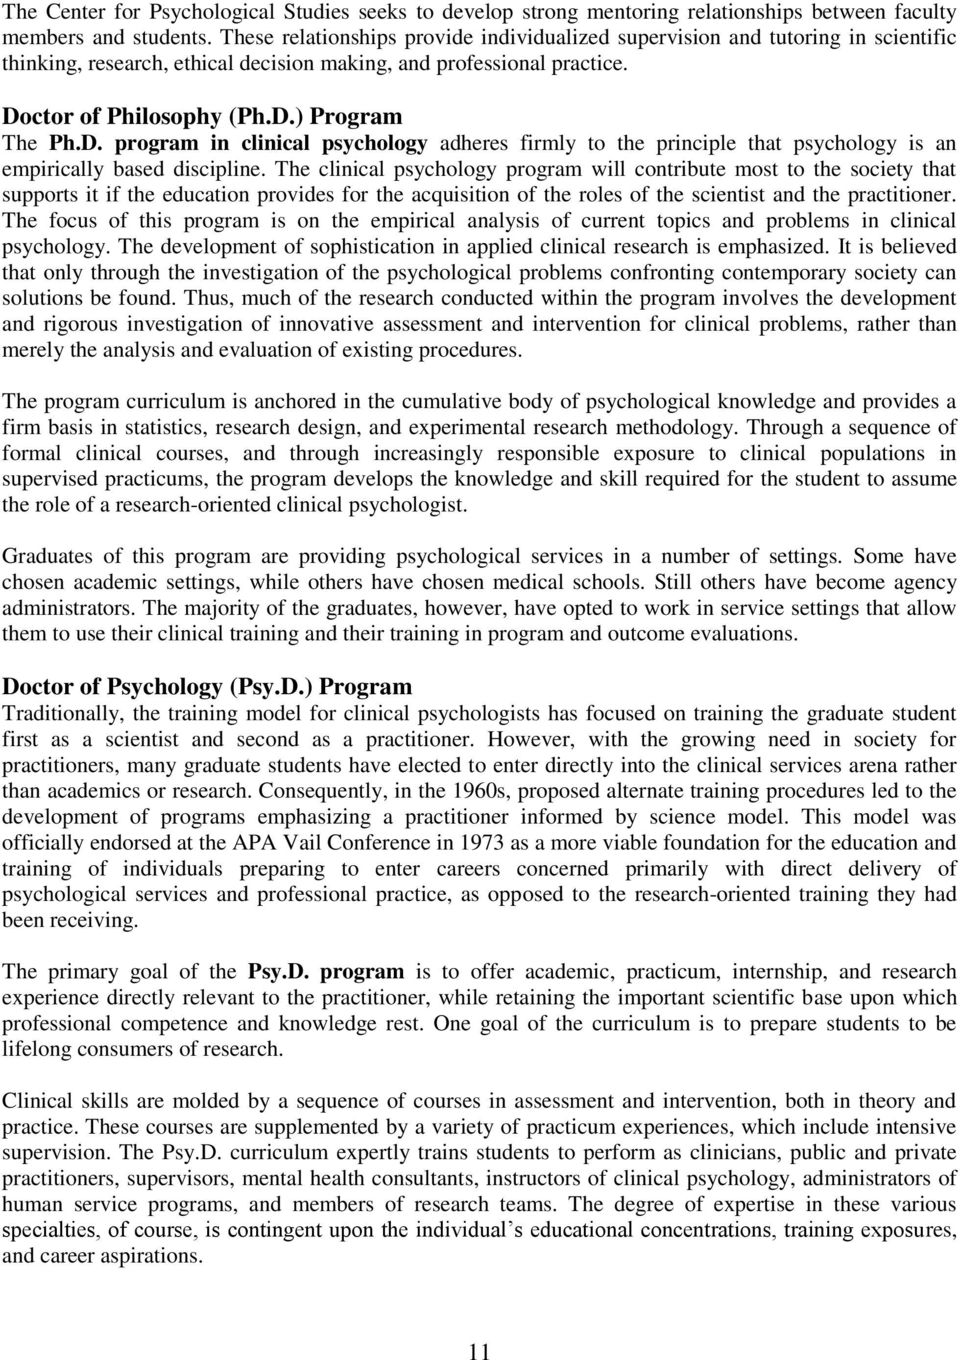 ctor of Philosophy (Ph.D.) Program The Ph.D. program in clinical psychology adheres firmly to the principle that psychology is an empirically based discipline.